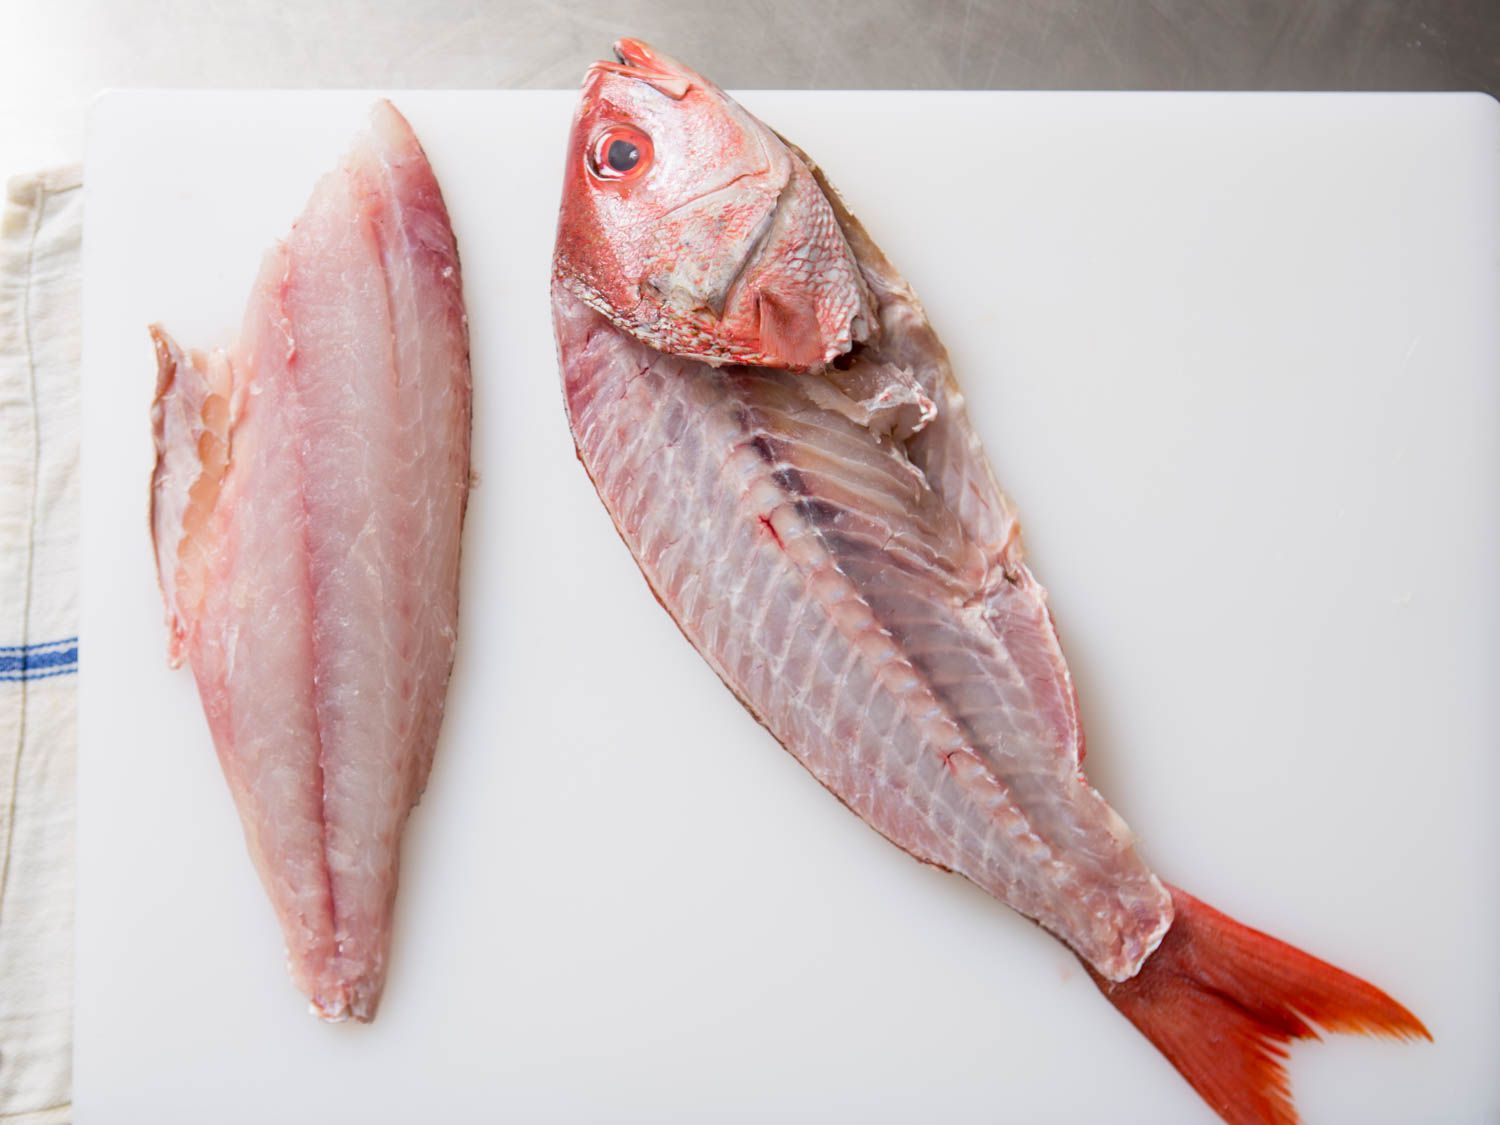 20150922-how-to-fillet-fish-11.jpg